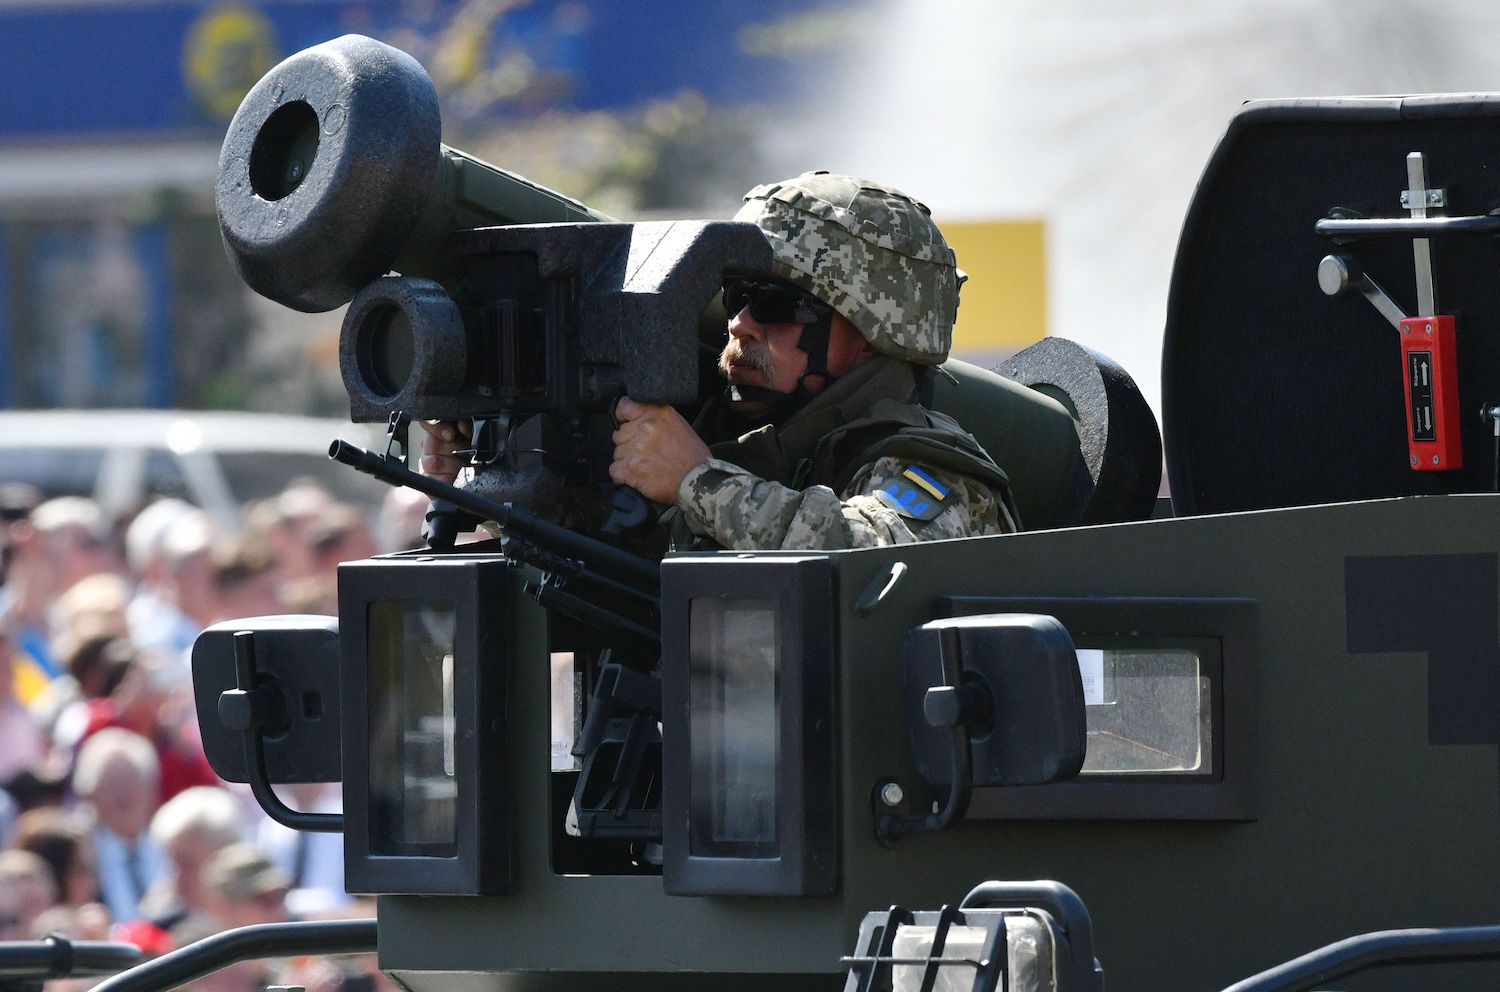 Javelin Missiles at the Heart of Impeachment Scandal Hold